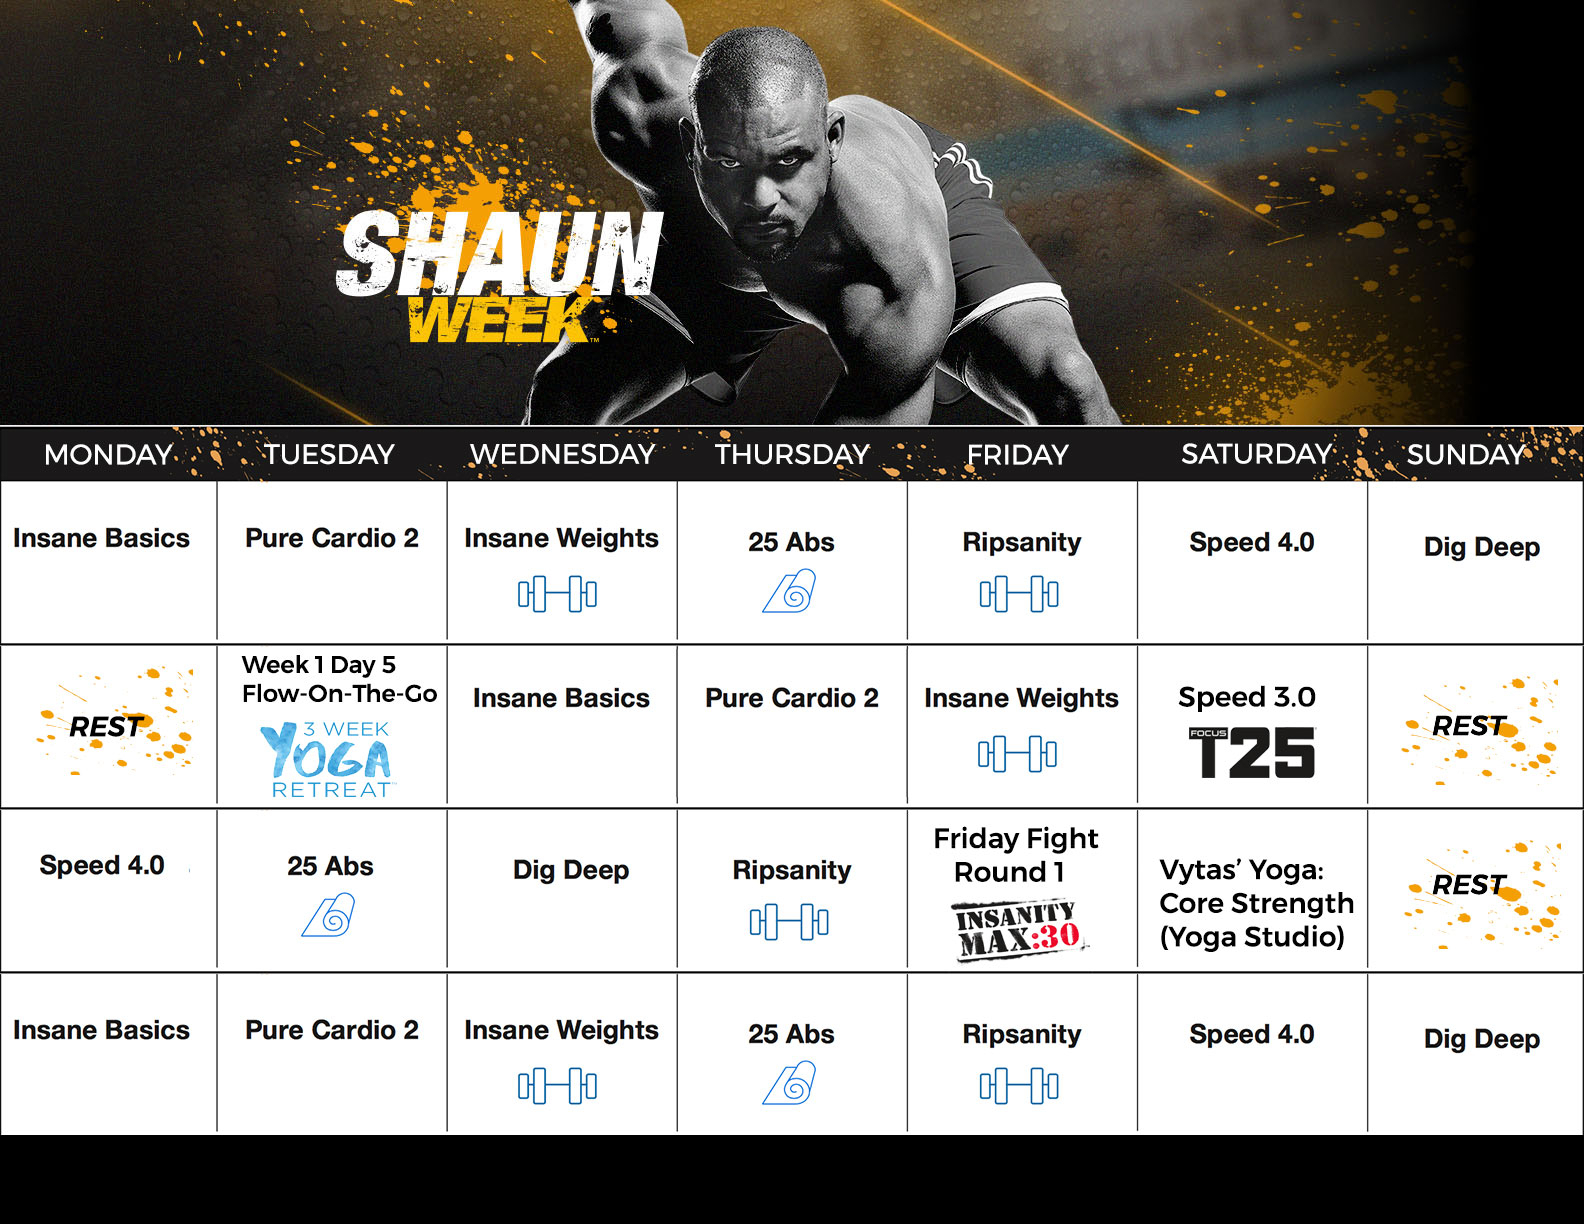 Shaun T Shaun Week Calendar throughout Shaun T Calendar